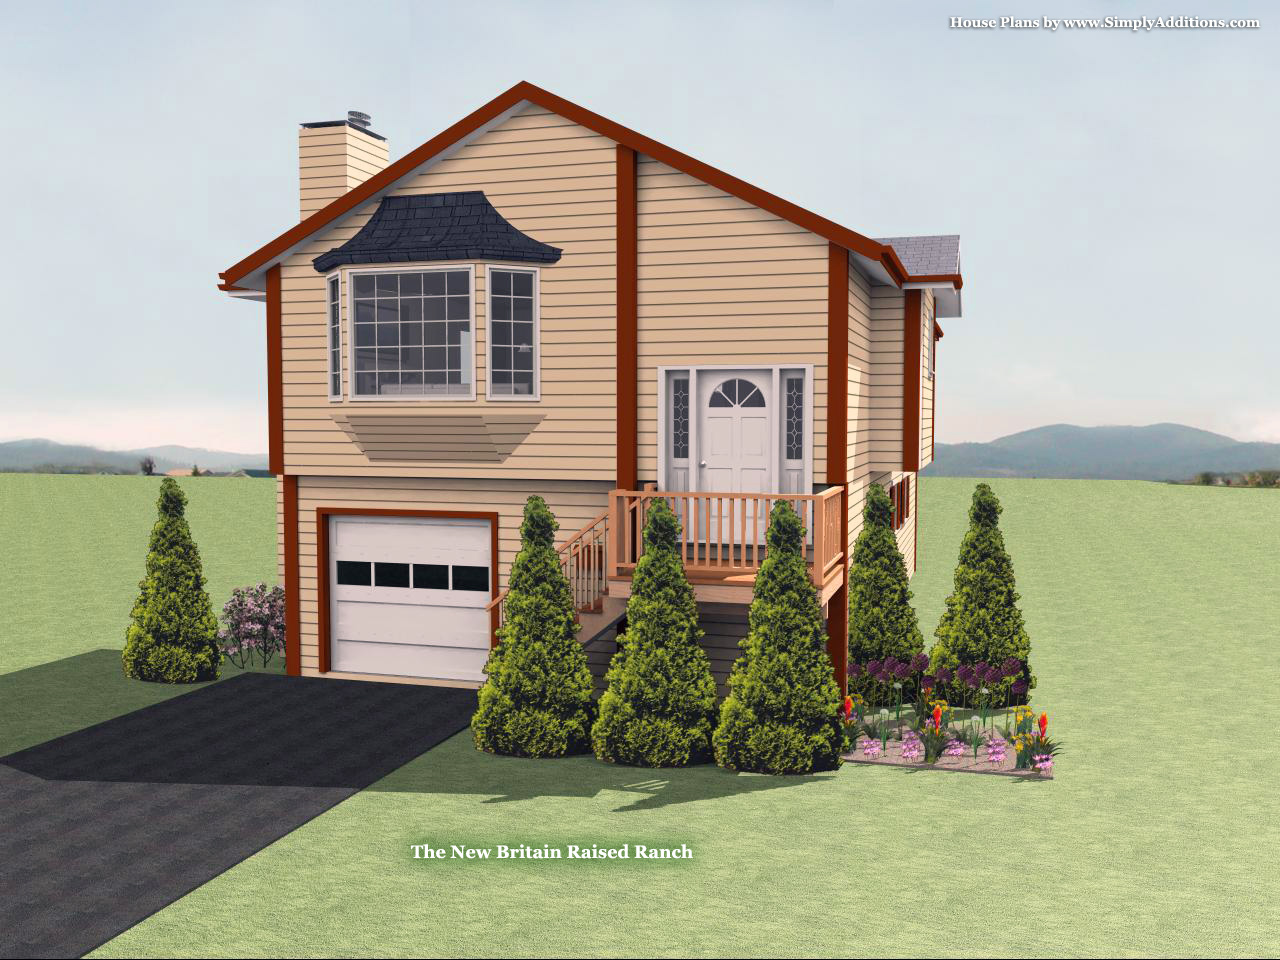 The new britain raised ranch house plan for House addition plans